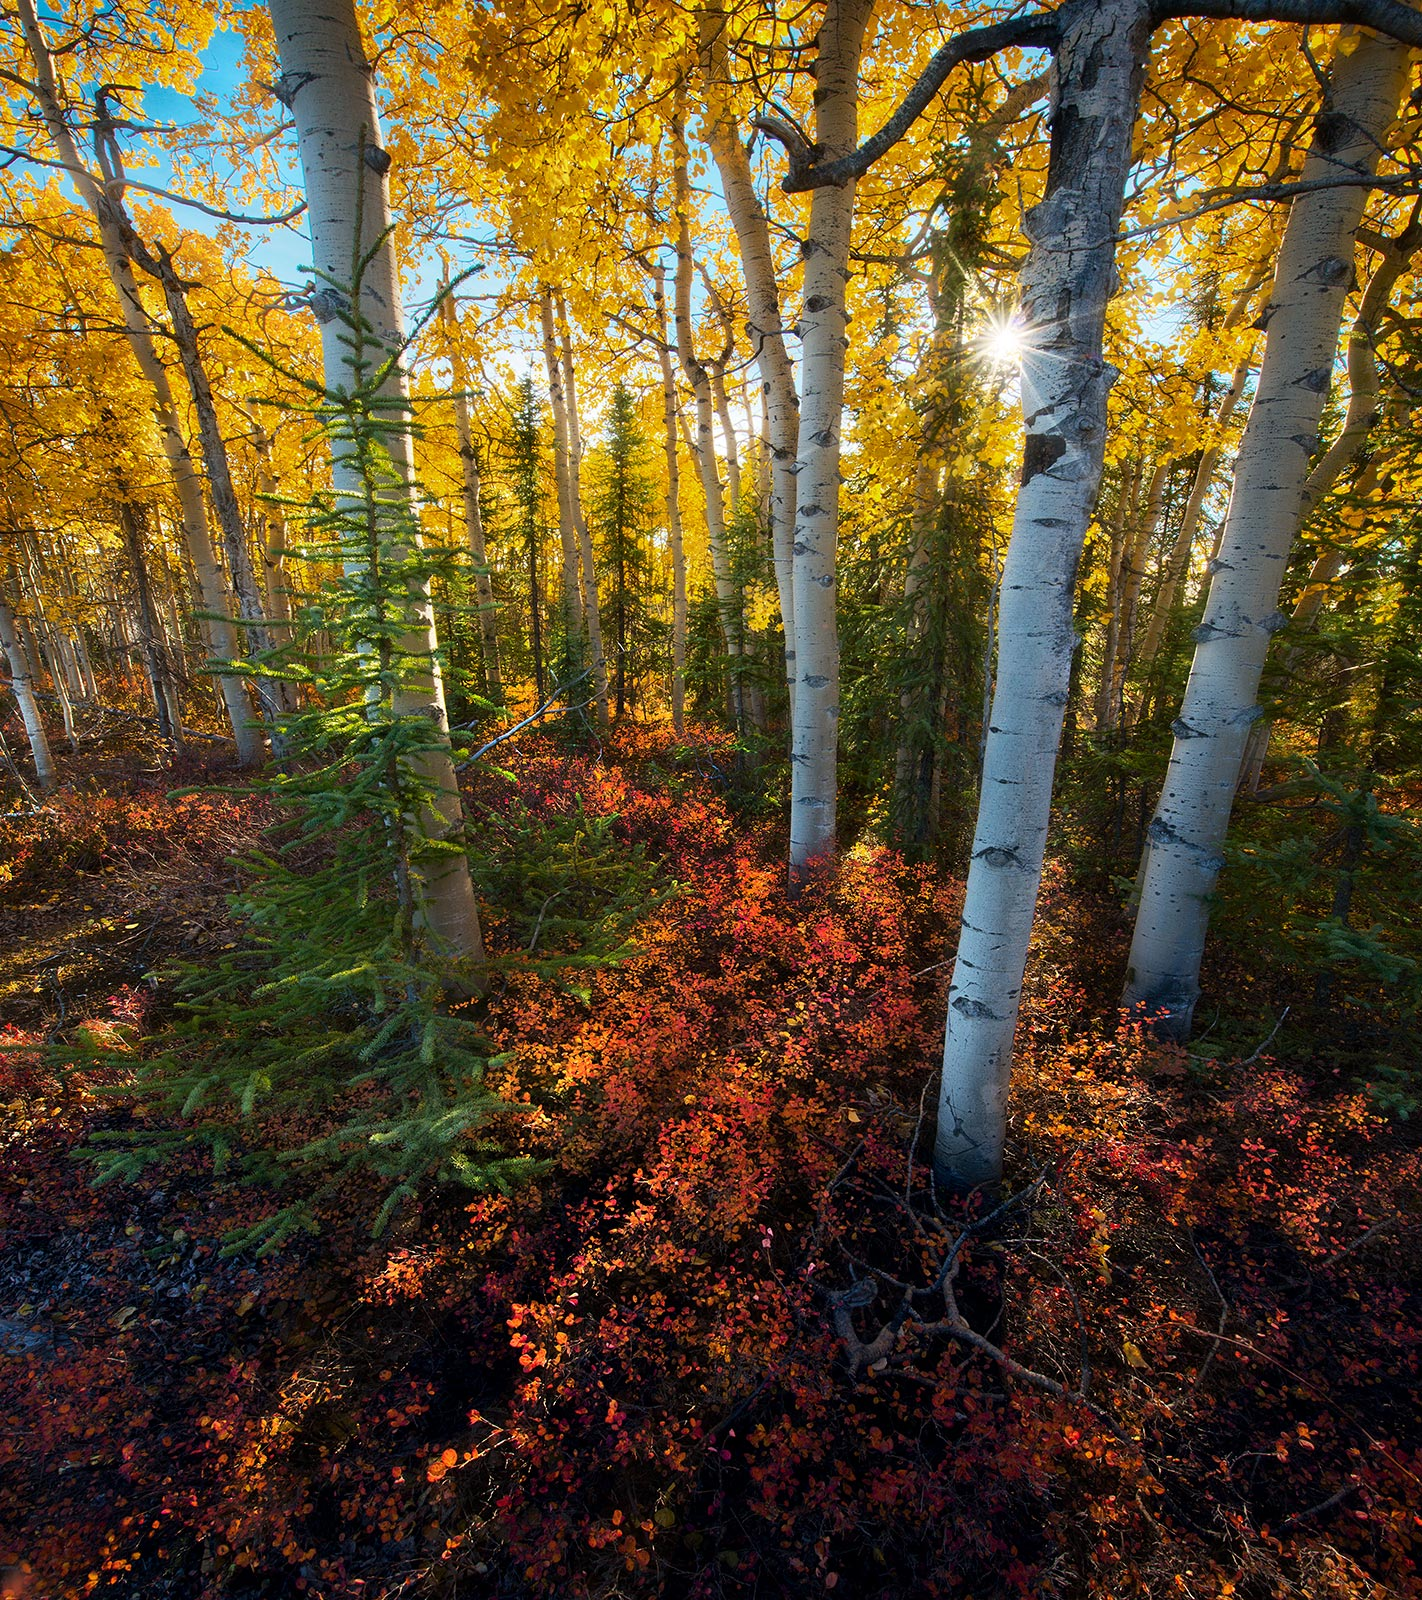 Just a simple array of Autumn colors and beautiful light photographed in a forest just outside Dawson City, in the Yukon.